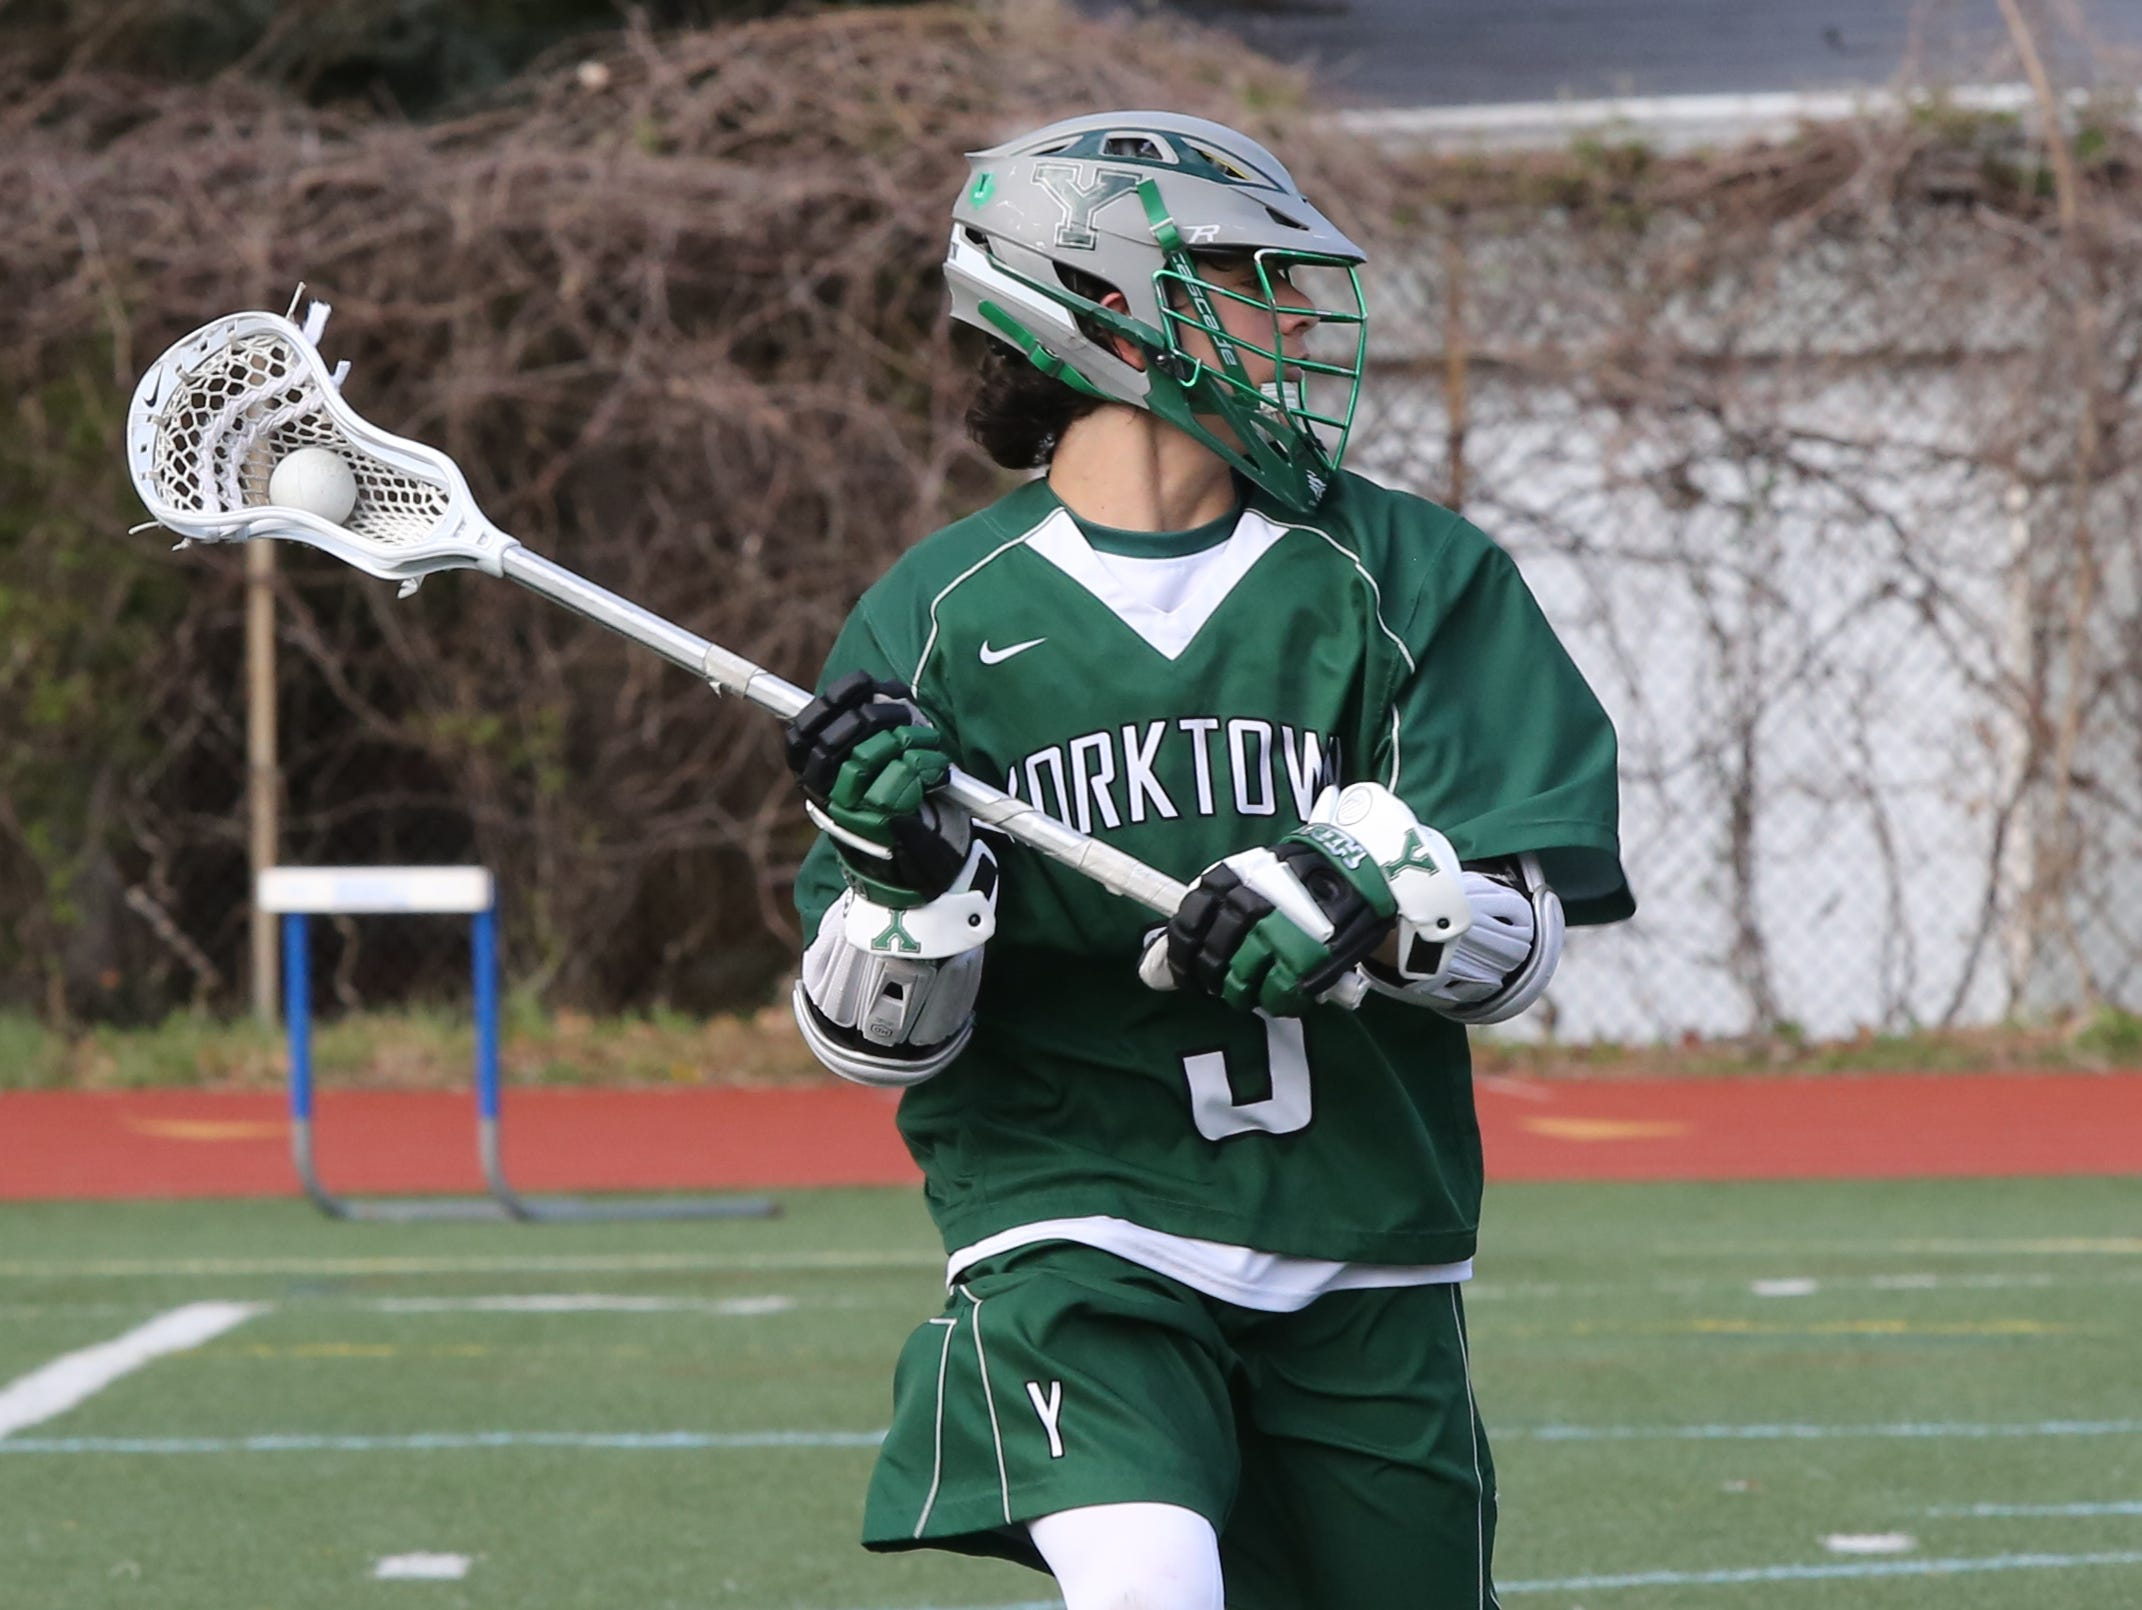 Yorktown's Jamison Embry looks for an open player during game the Huskers' victory over Bronxville at Bronxville High School on Thursday. Embry had four assists as Yorktown defeated the Broncos 9-5.